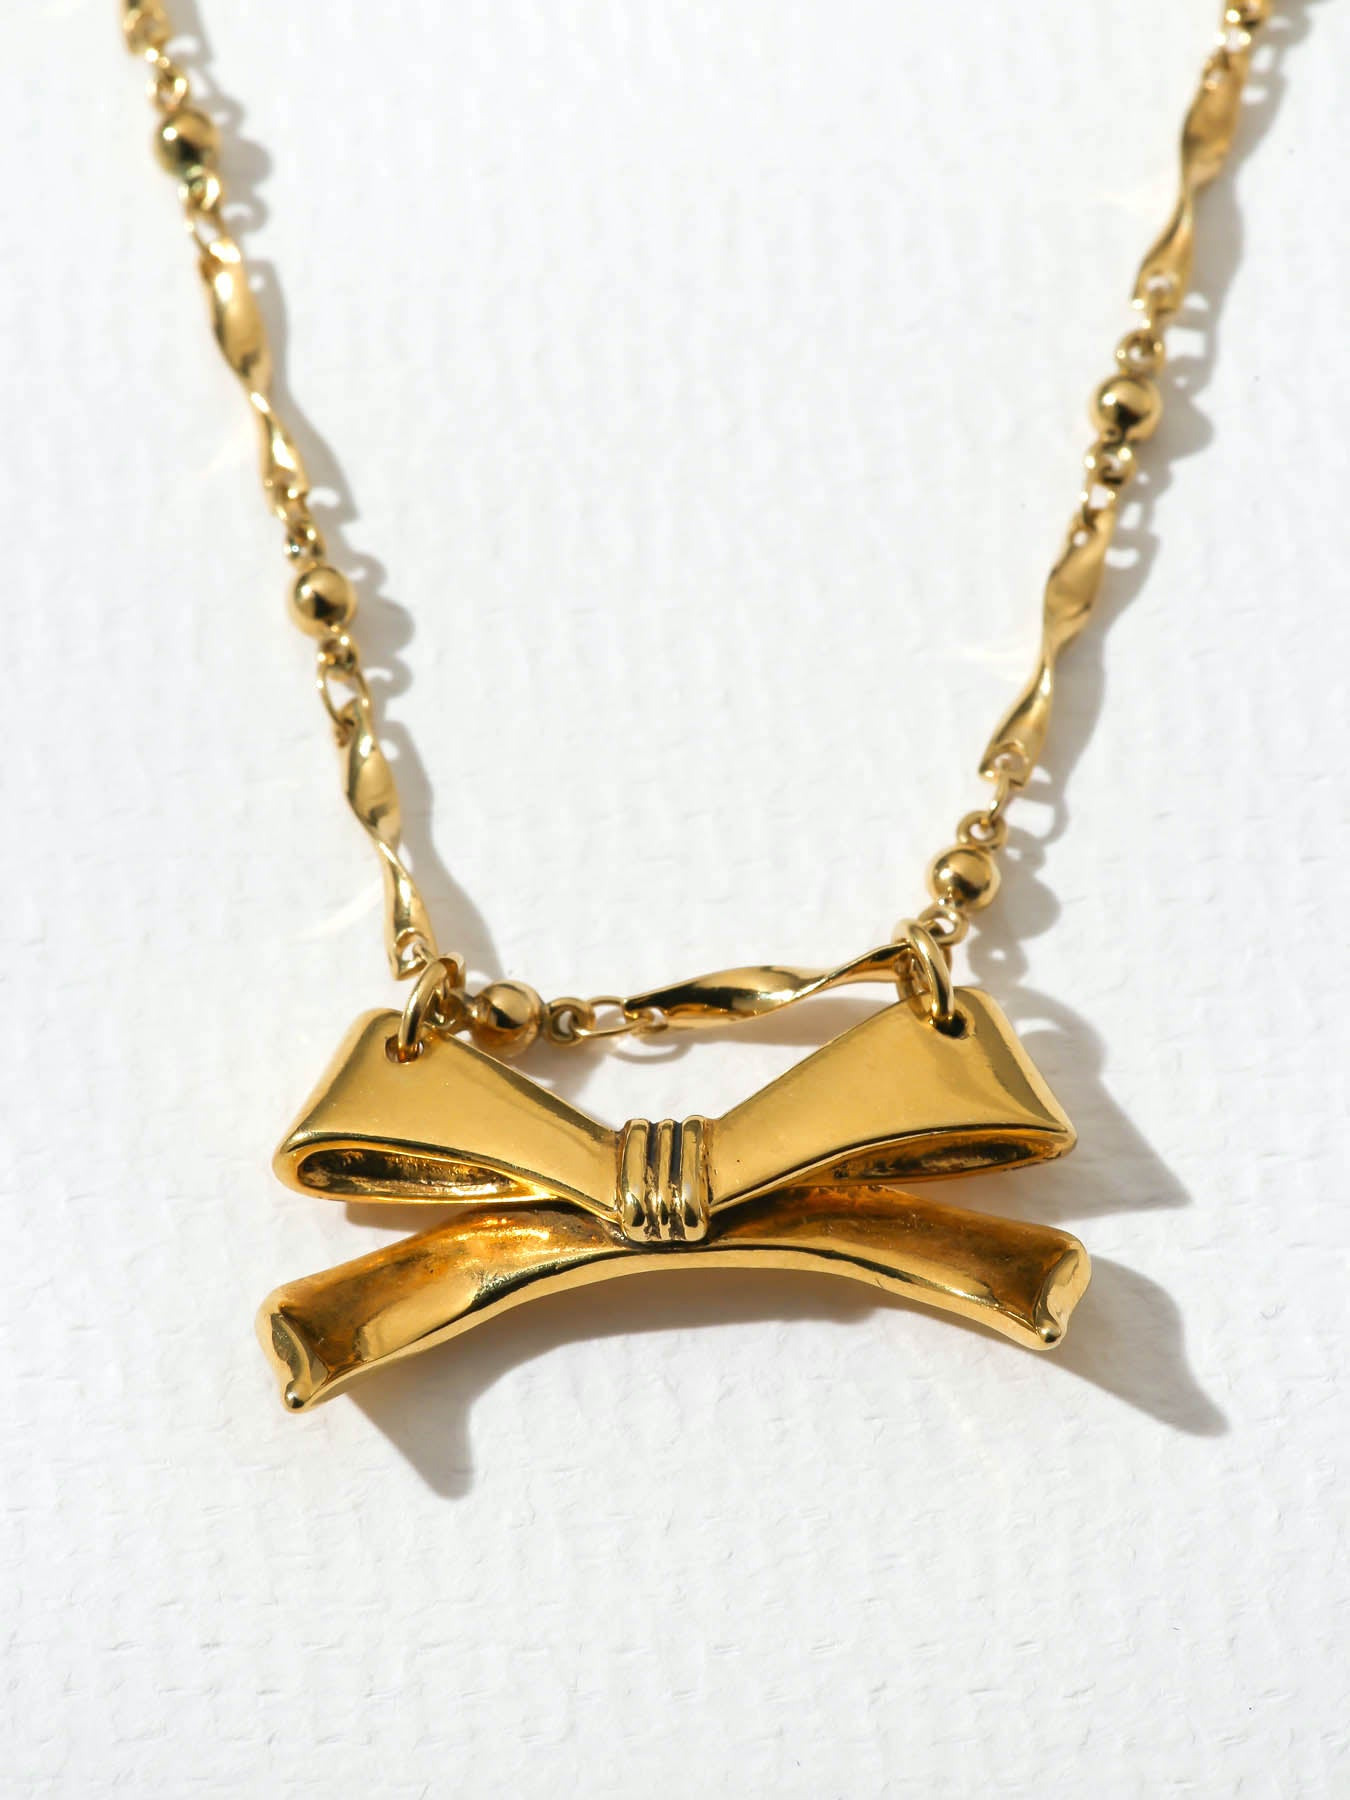 The Bow Tied Necklace